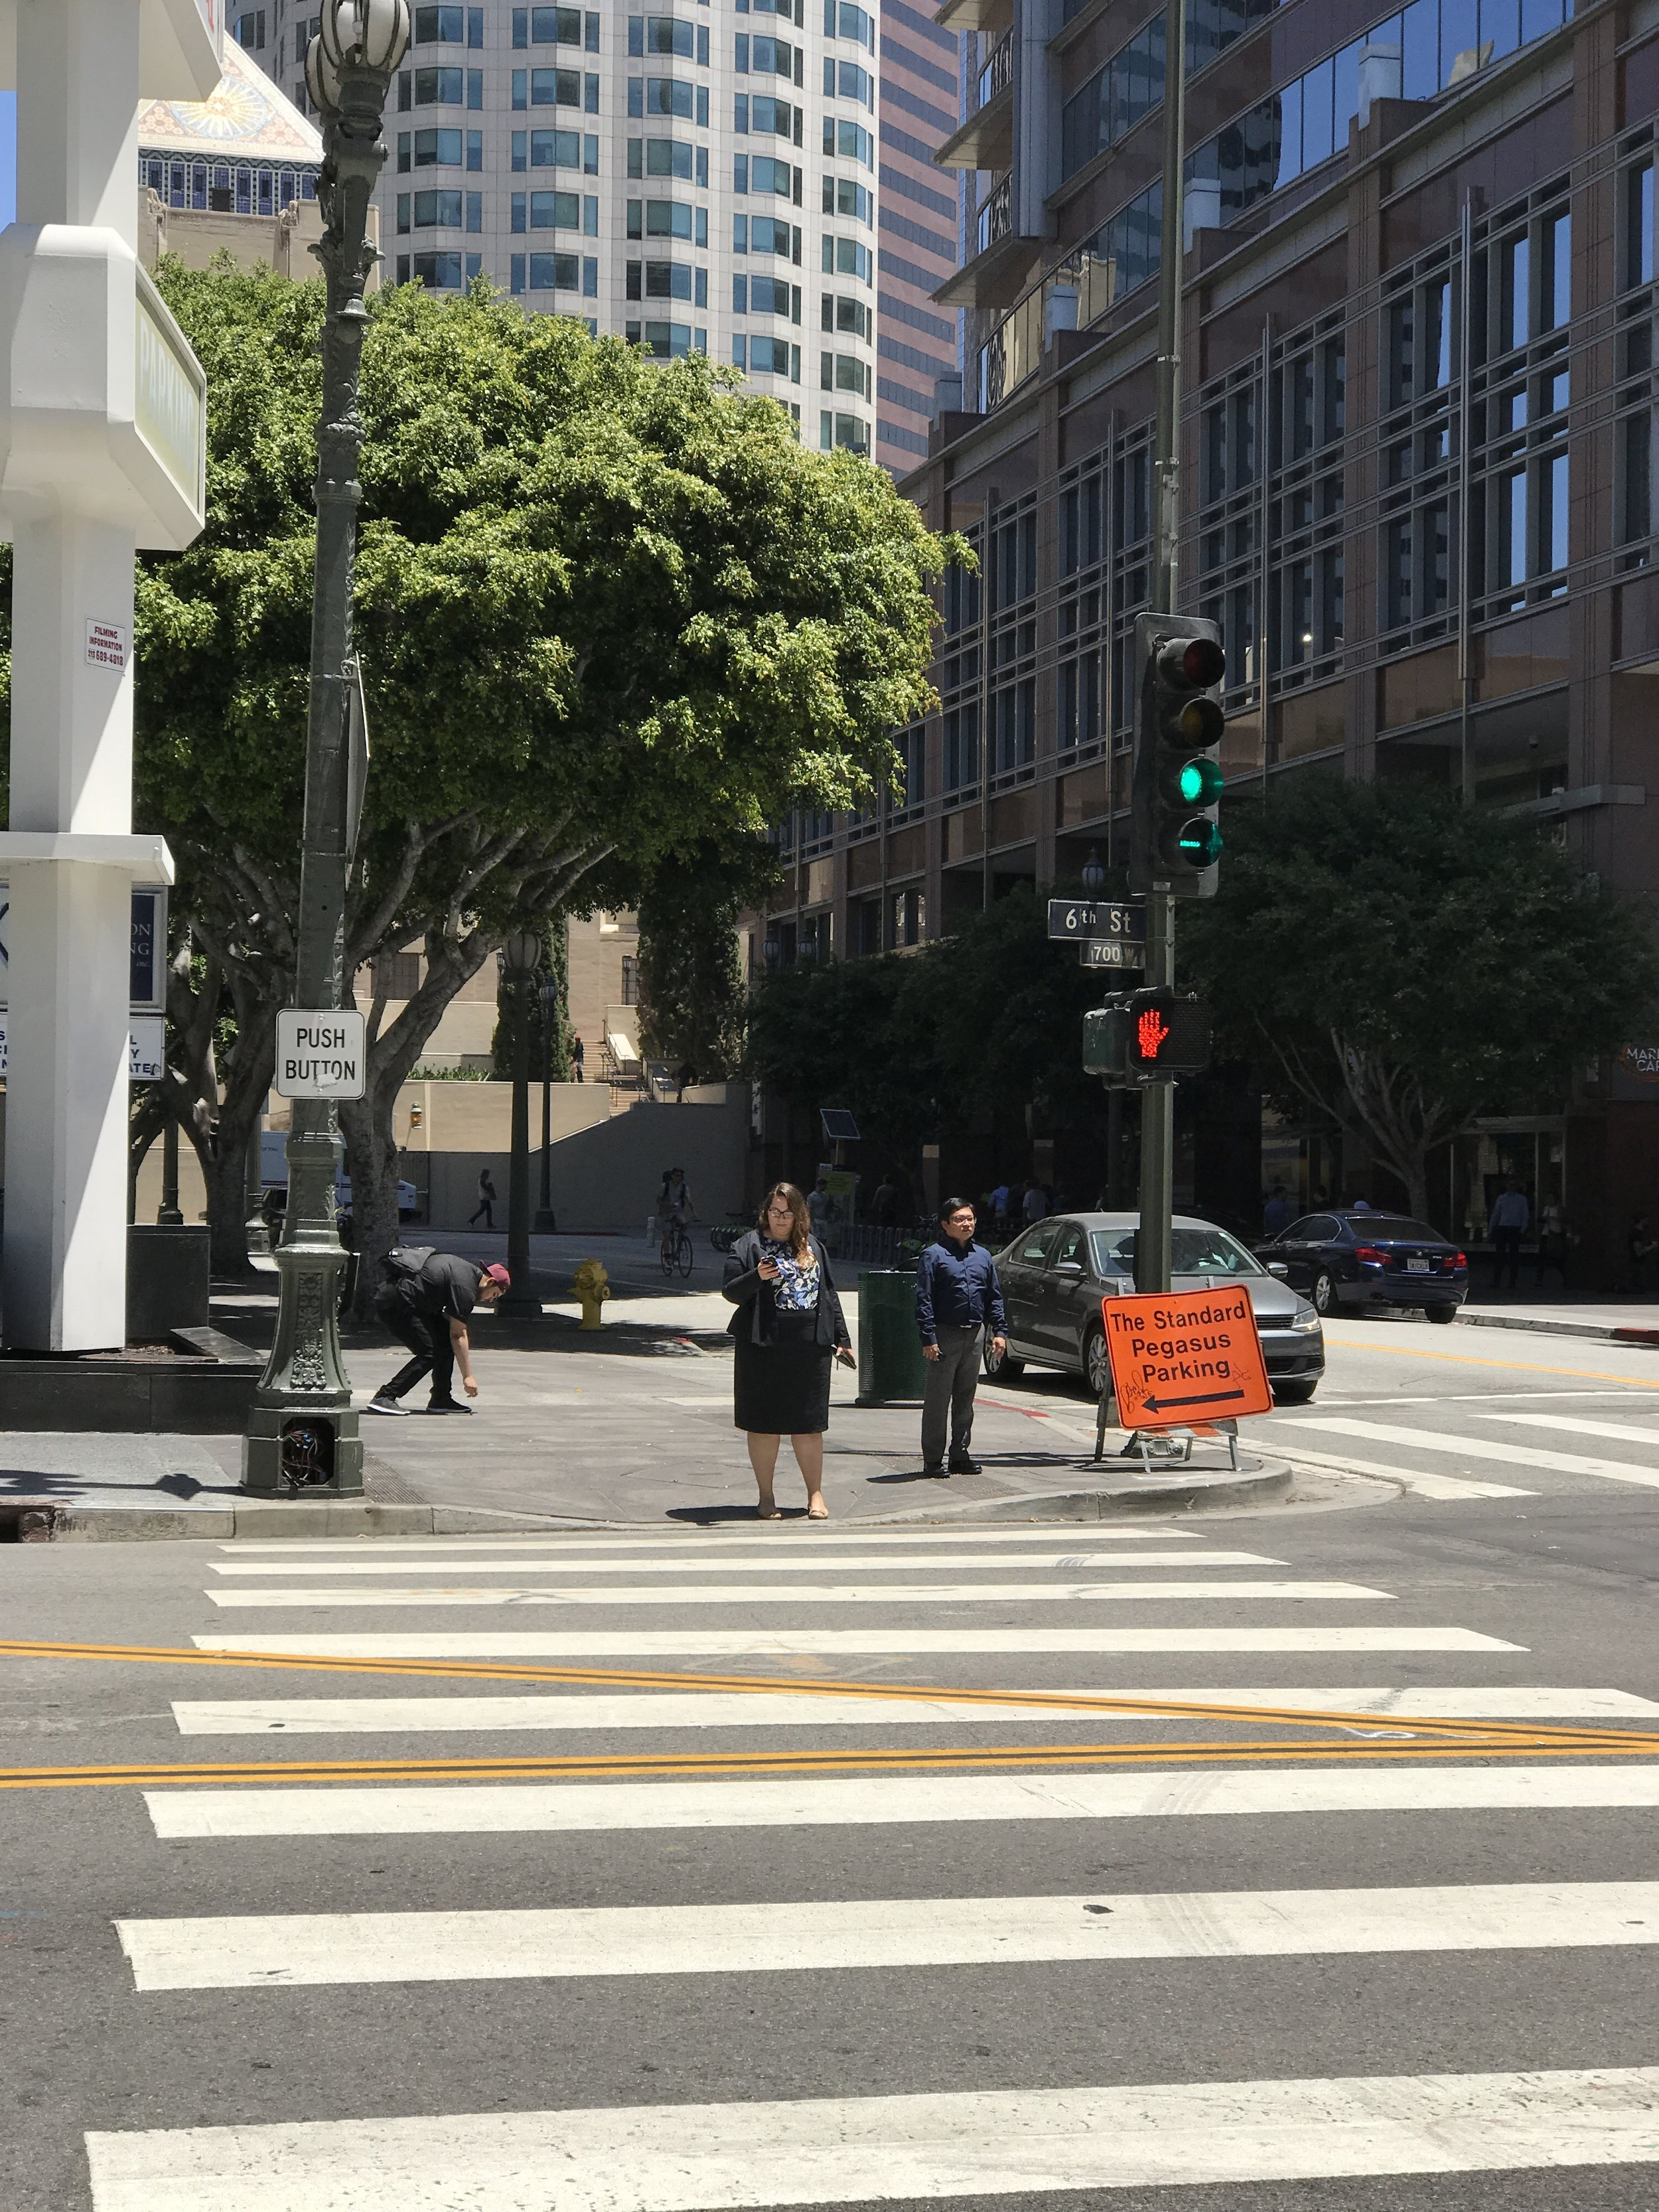 """The reengineered intersection of Hope and 6th Streets in Downtown Los Angeles, with signage commanding pedestrians to """"PRESS BUTTON"""" for permission to cross."""